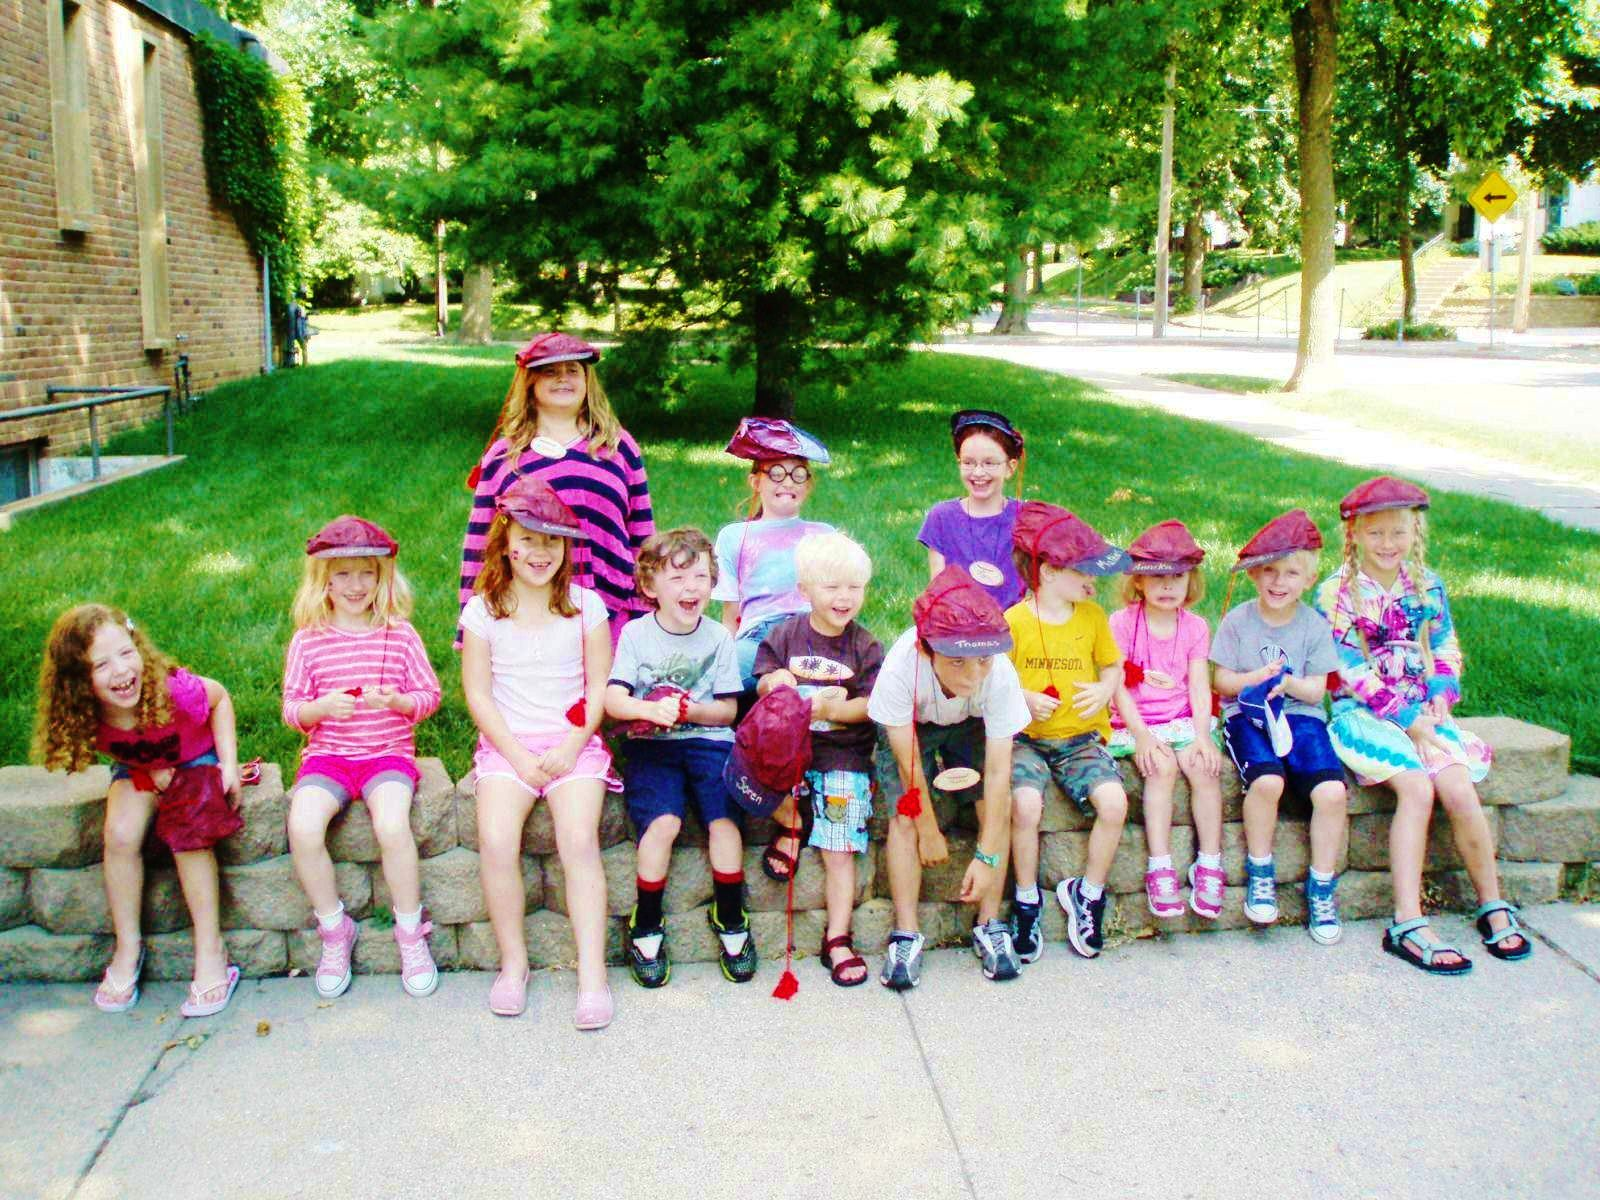 Photo: Valerie Borey Caption: Summer participants in Concordia Language Villages' Norwegian Day Camp (Twin Cities). Our theme for the week was Russefeiring - we wore russeluer, drove a russebil made out of cardboard, made our own russedrakter, and tied knots in our tassels for each prank or challenge we pulled off! We even tried pickled herring! And of course we spoke Norwegian all week long!